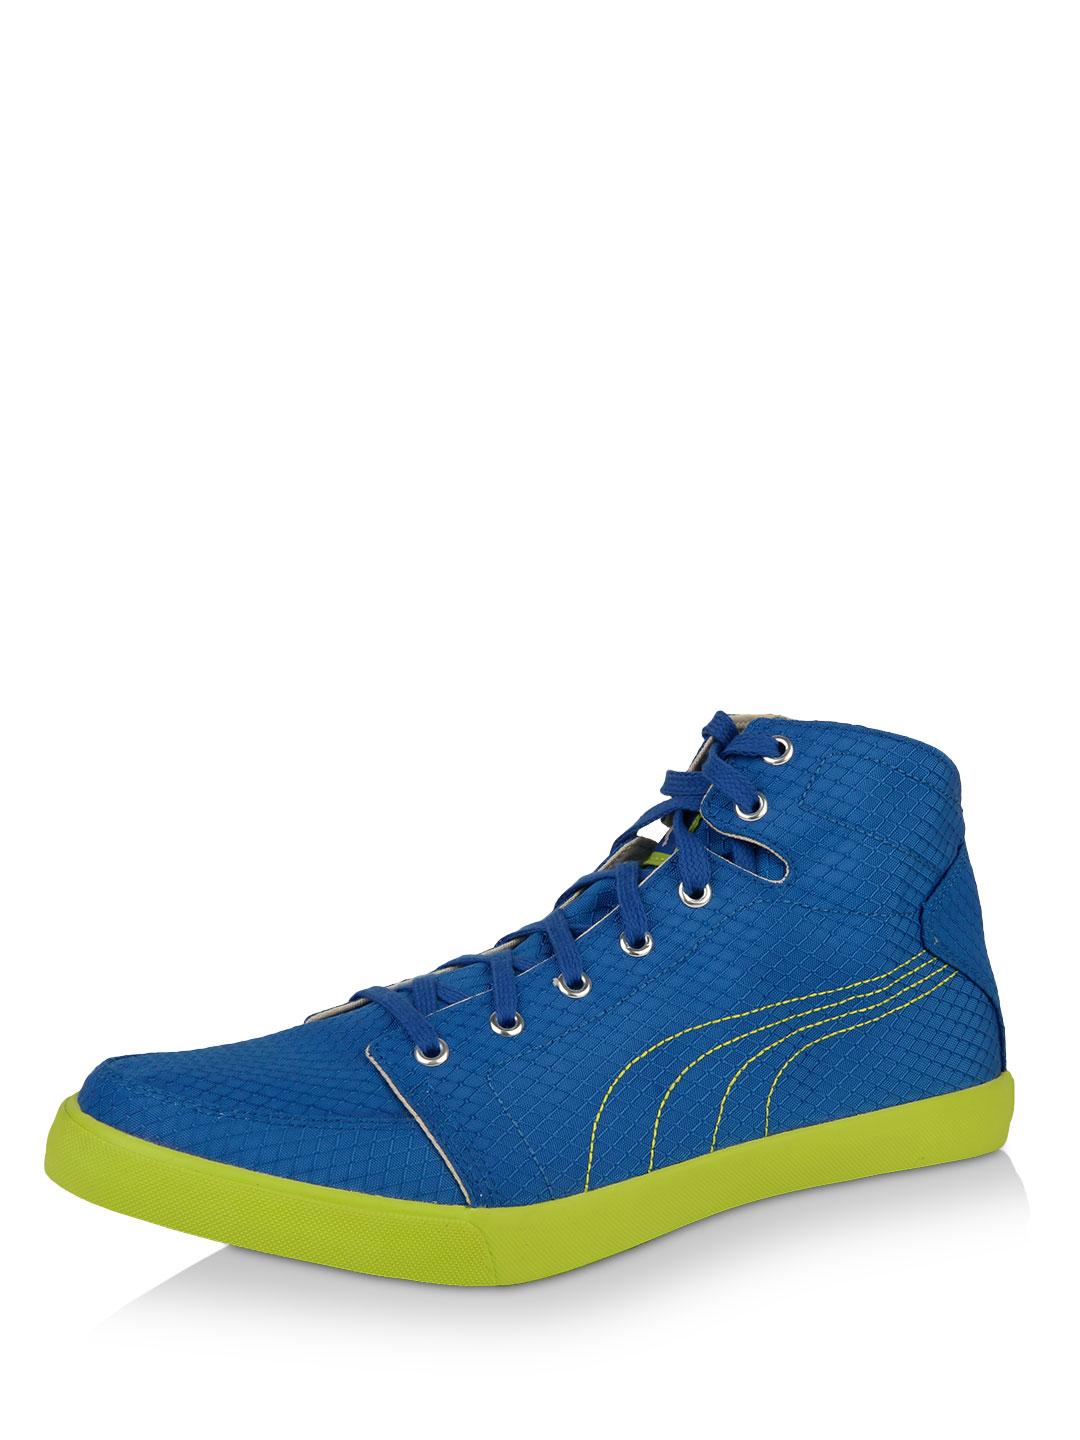 Puma High Ankle Sneakers